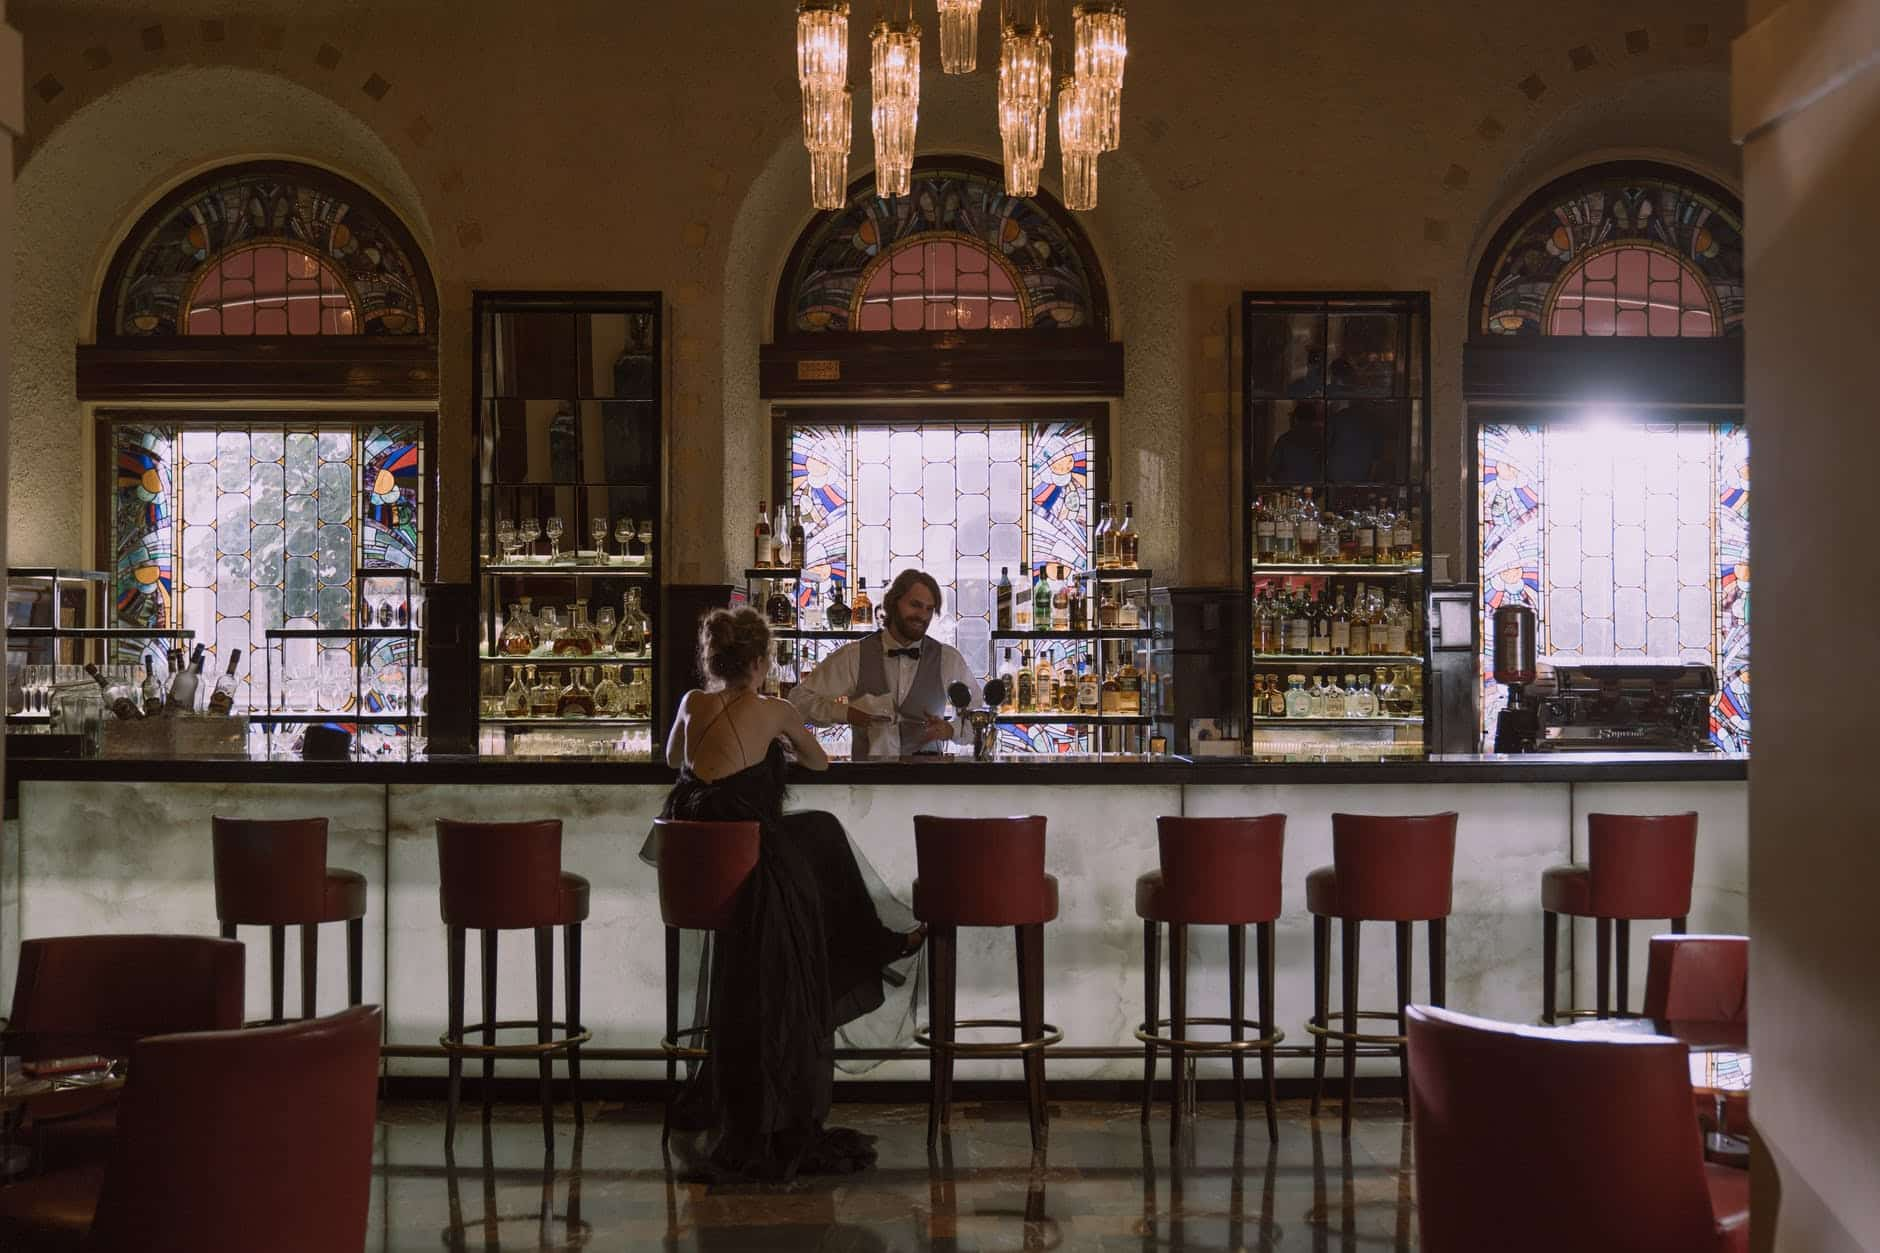 woman in black dress sitting alone at a bar counter